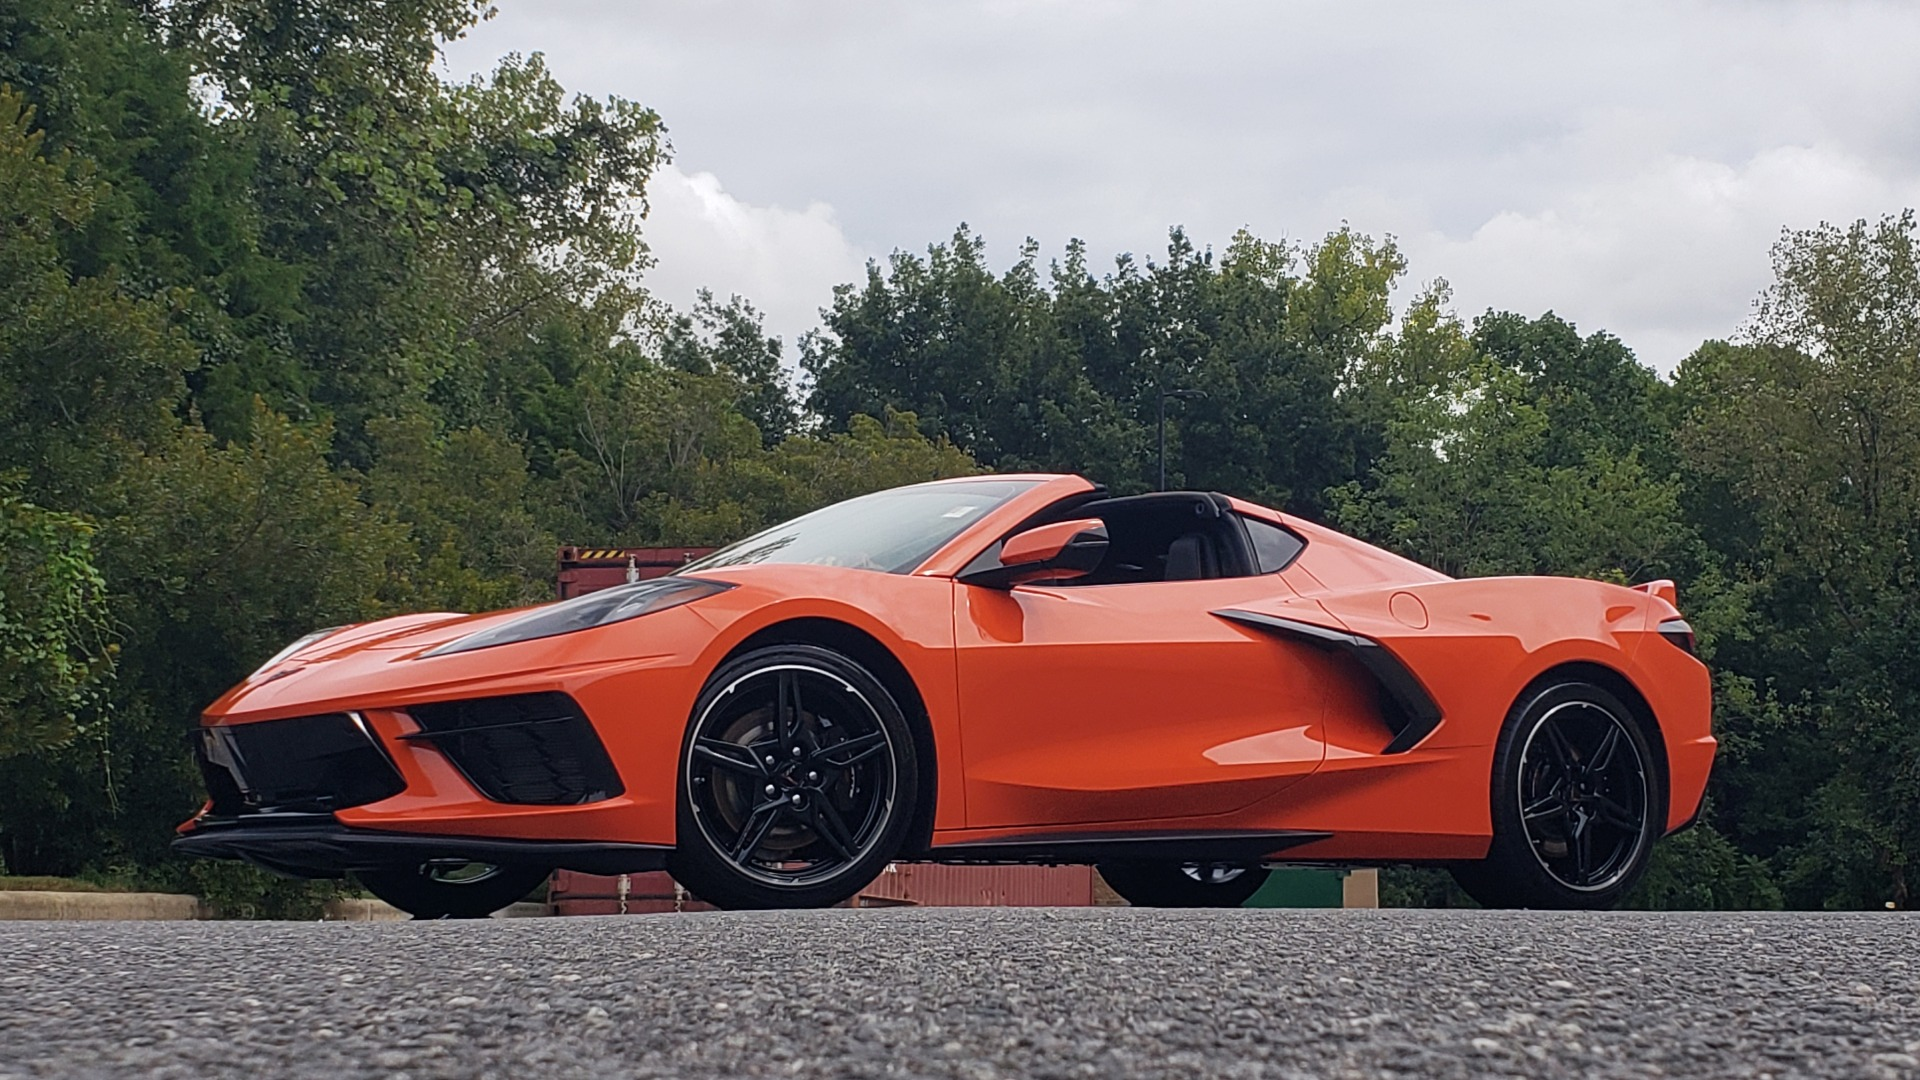 Used 2020 Chevrolet CORVETTE C8 STINGRAY 2LT / 6.2L V8 / 8-SPD AUTO / NAV / BOSE / REARVIEW / DATA RECOR for sale Sold at Formula Imports in Charlotte NC 28227 73